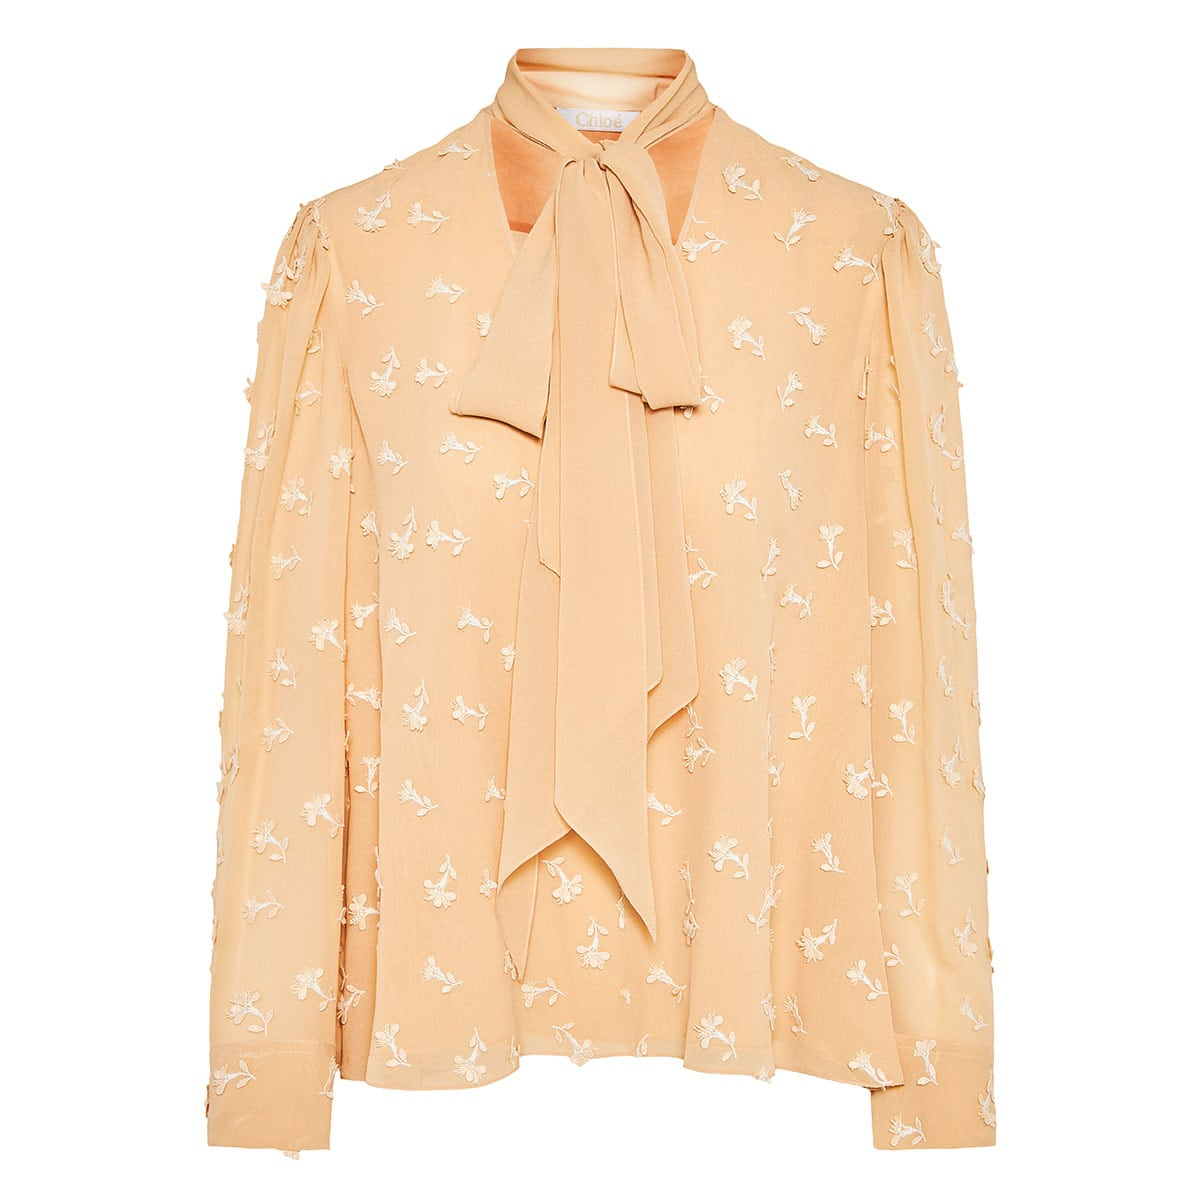 Bow-tie blouse with embroidered flowers